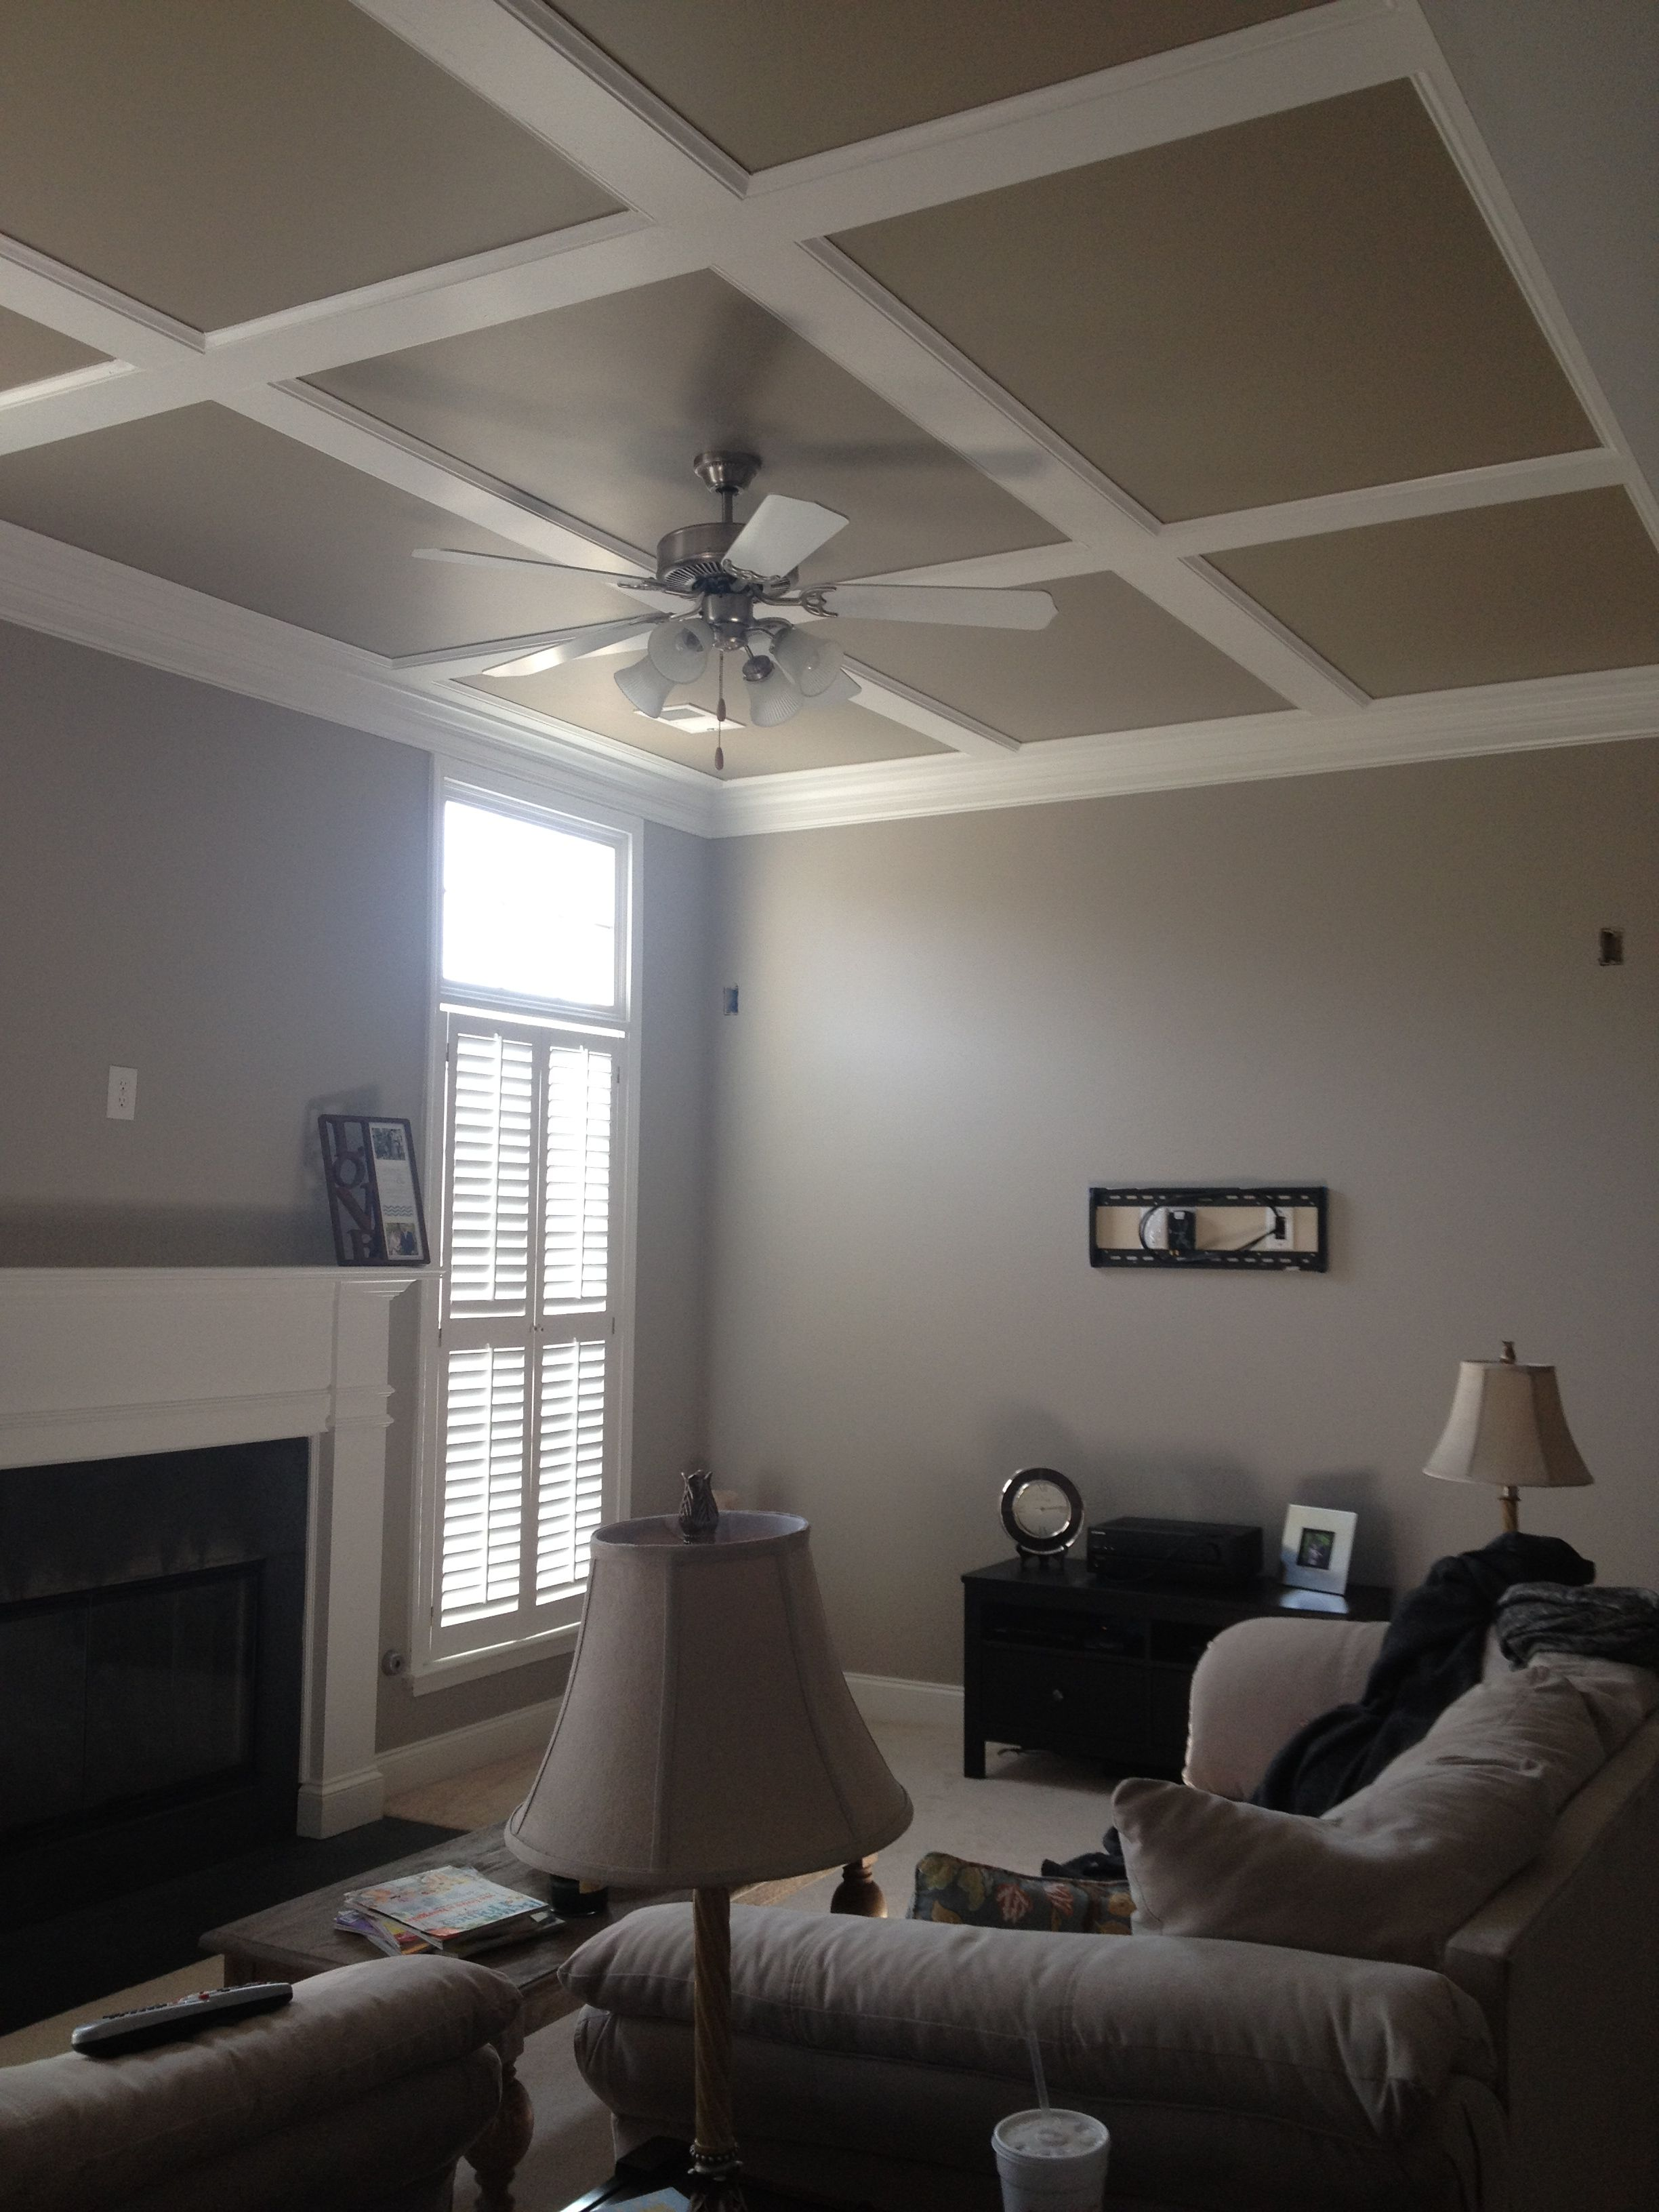 Behr Grey Mist on the walls and Behr Smoked Tan on the ceiling